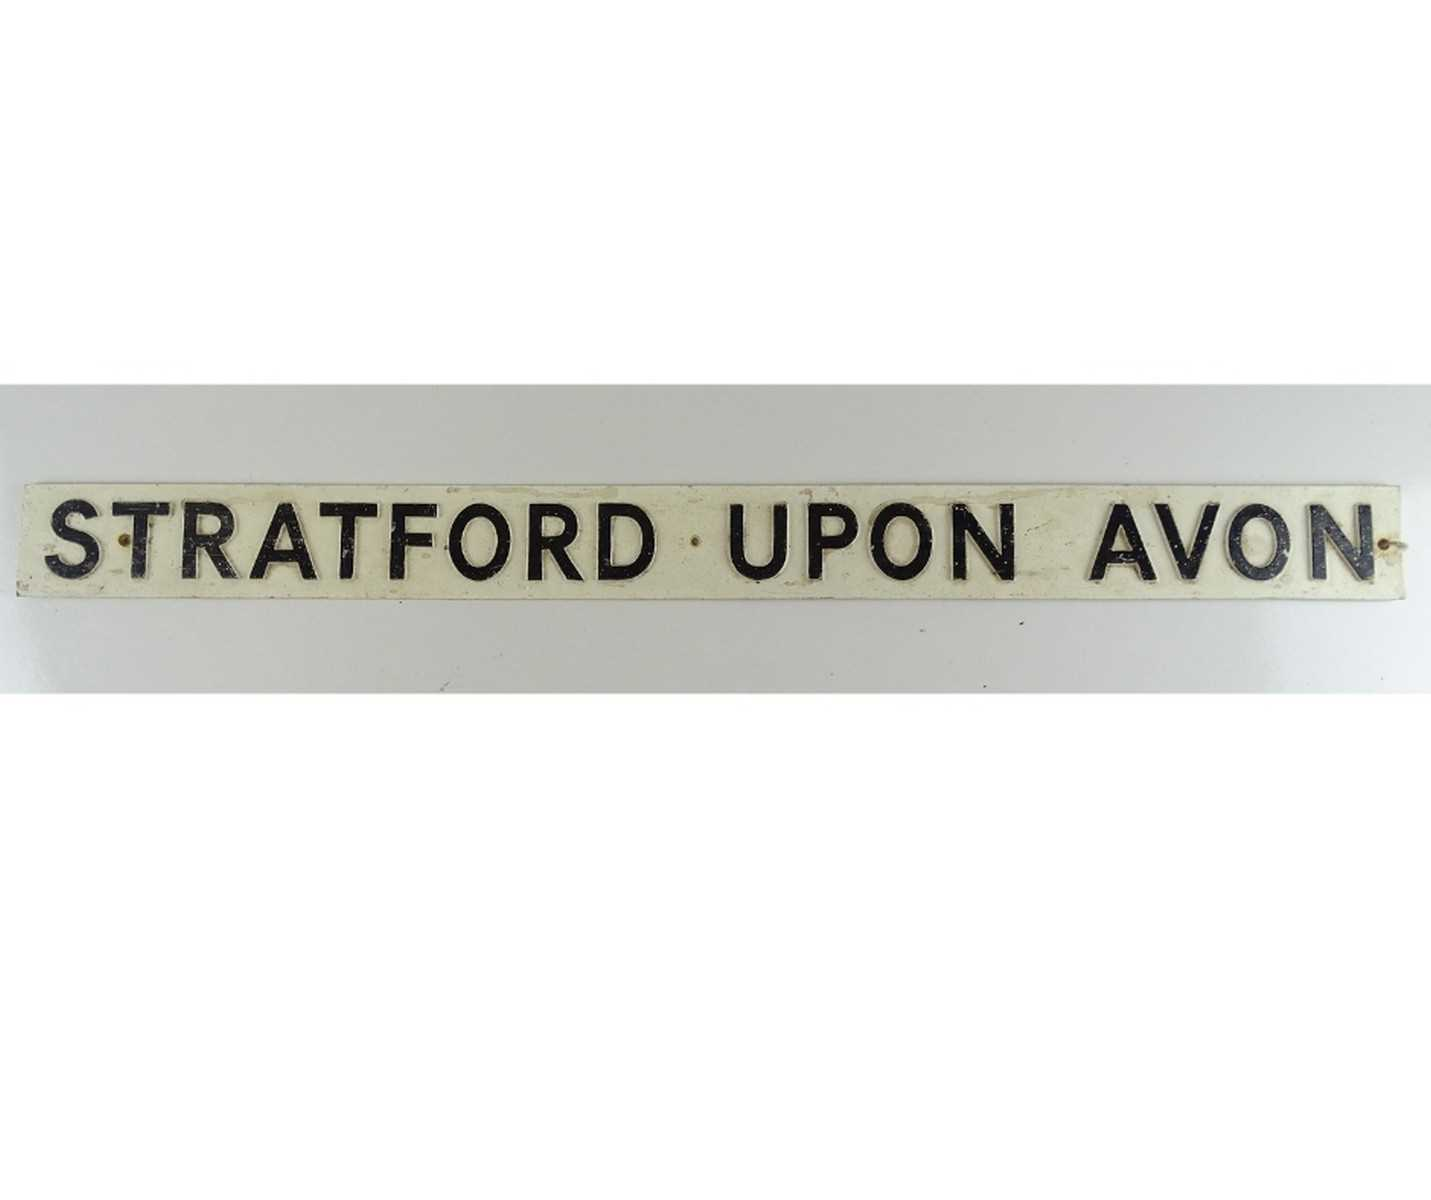 A railway bench sign 'Stratford upon Avon' - this would have been attached to the rear of a platform